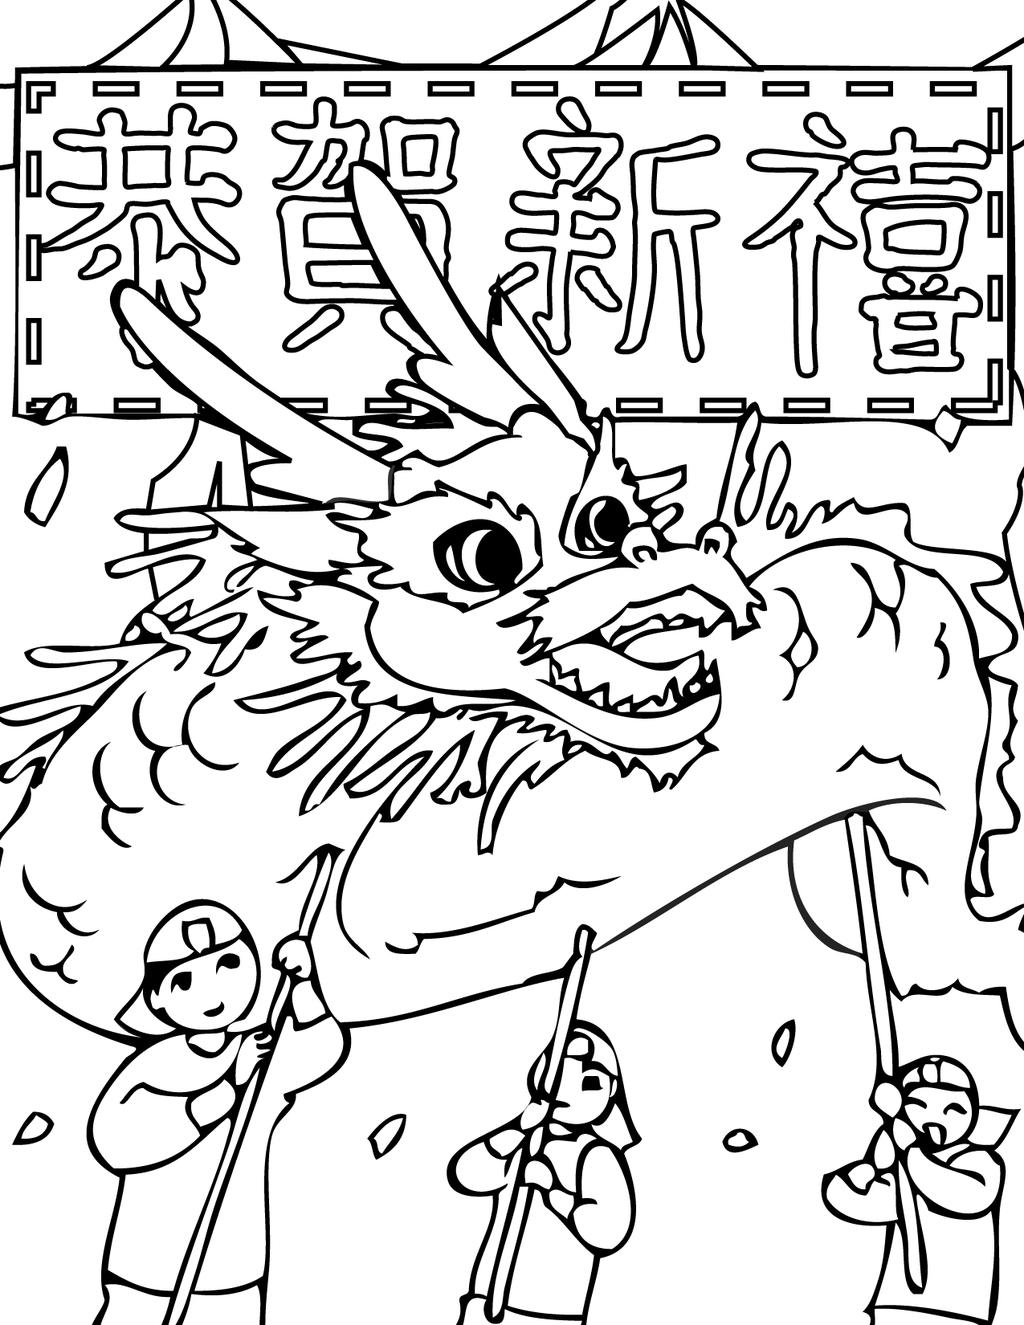 Free Chinese New Year Coloring Pages Ace for Kids printable